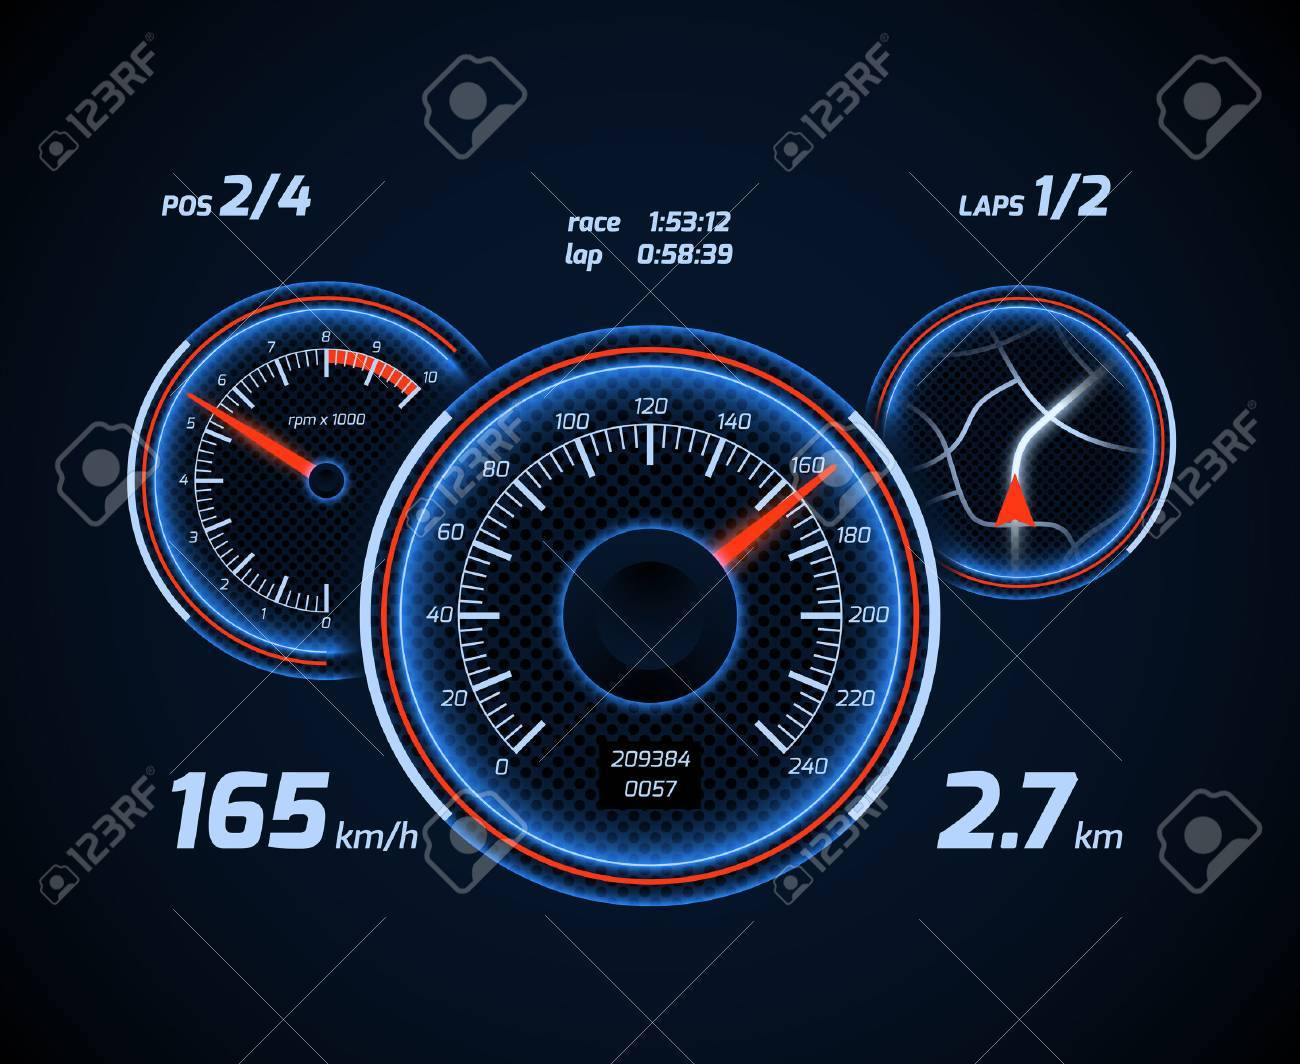 Racing car computer and app smartphone game dashboard with speedometer